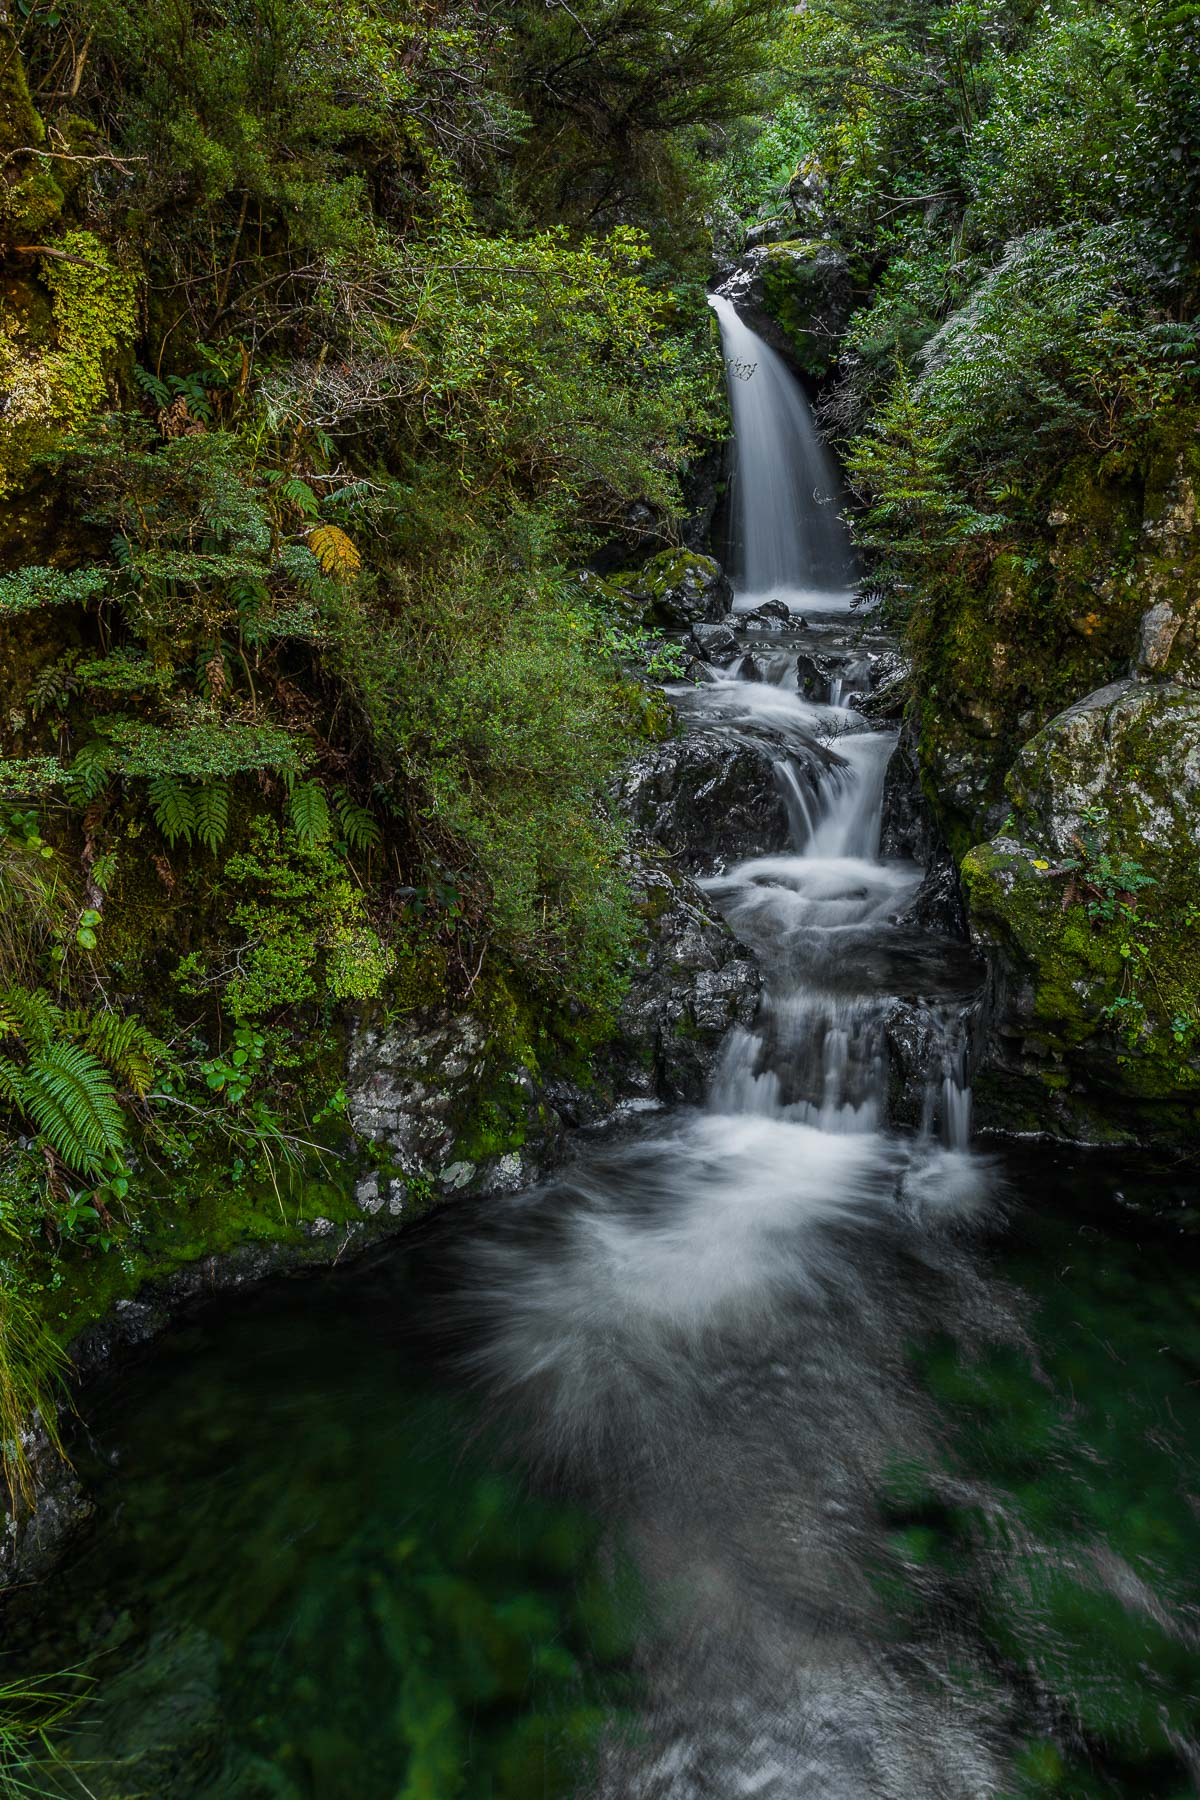 waterfall-avalanche-creek-falls-arthurs-pass-new-zealand-christchurch-canterbury-nz.jpg